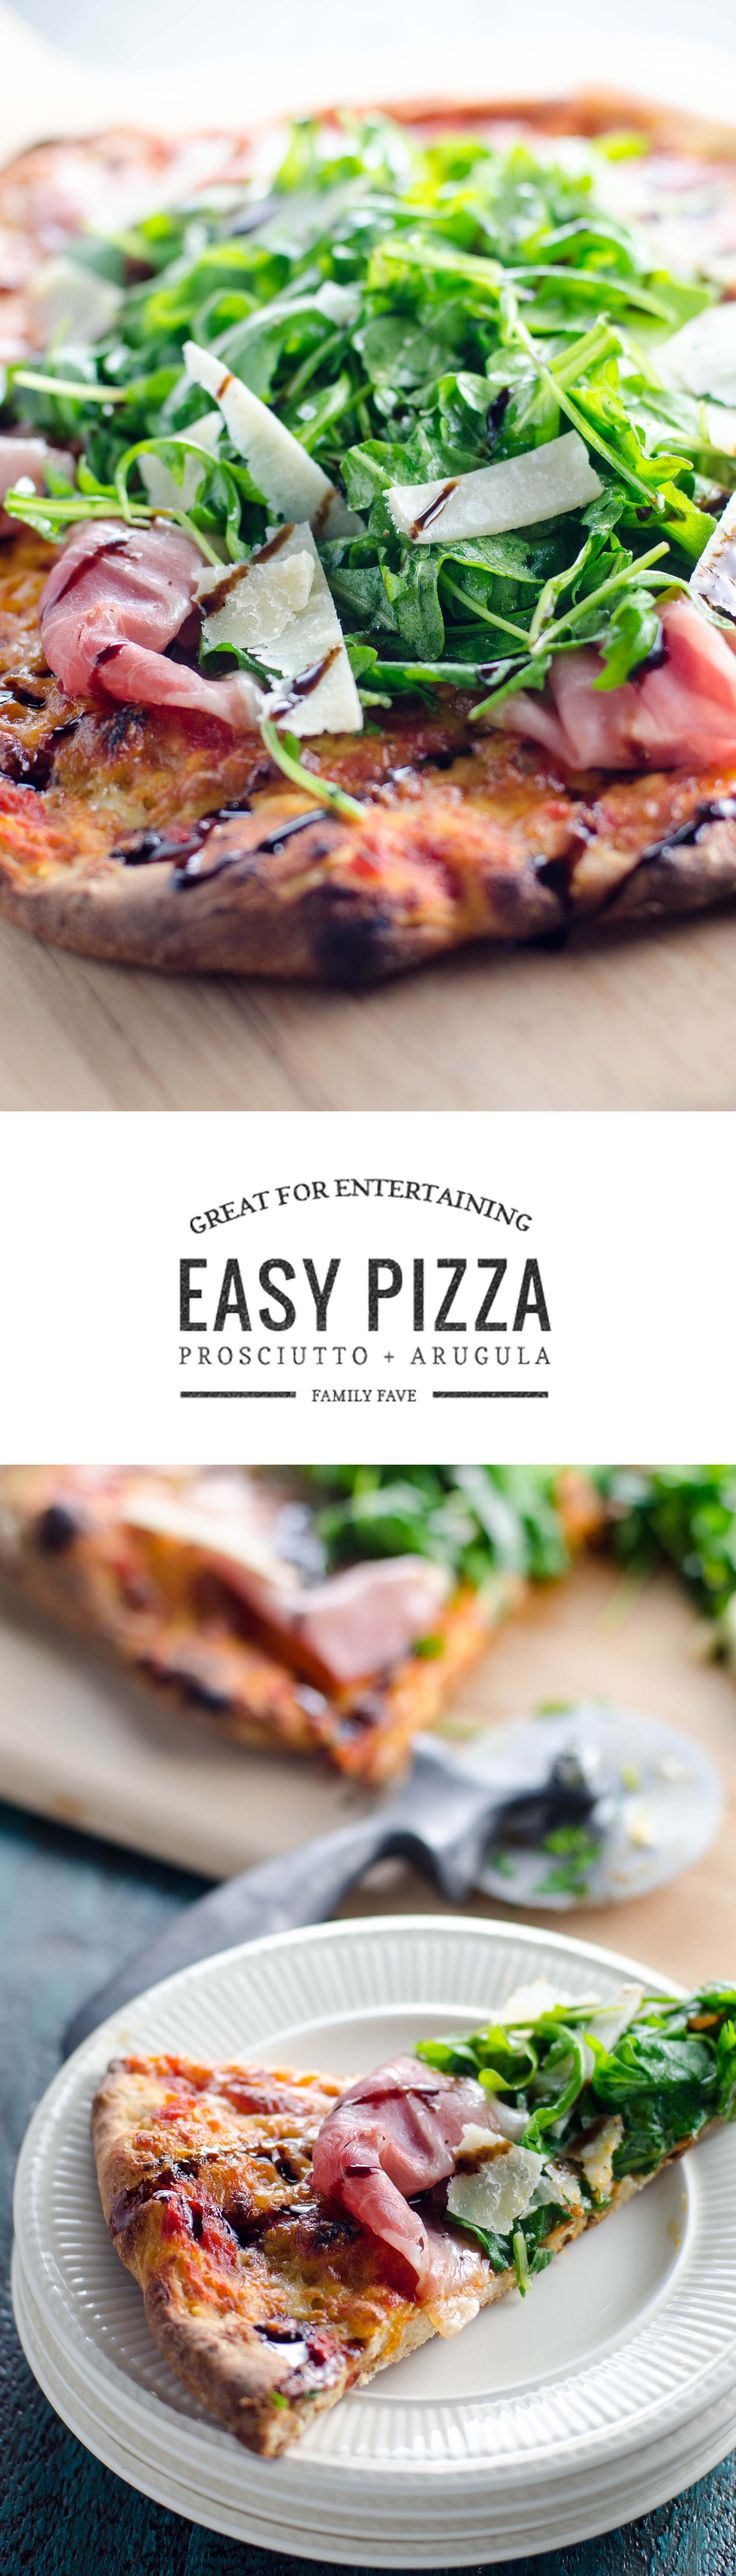 Prosciutto arugula pizza with shards of savory parmesan and a sweet balsamic drizzle looks impressive but is one of the easiest pizzas to make. Win win!